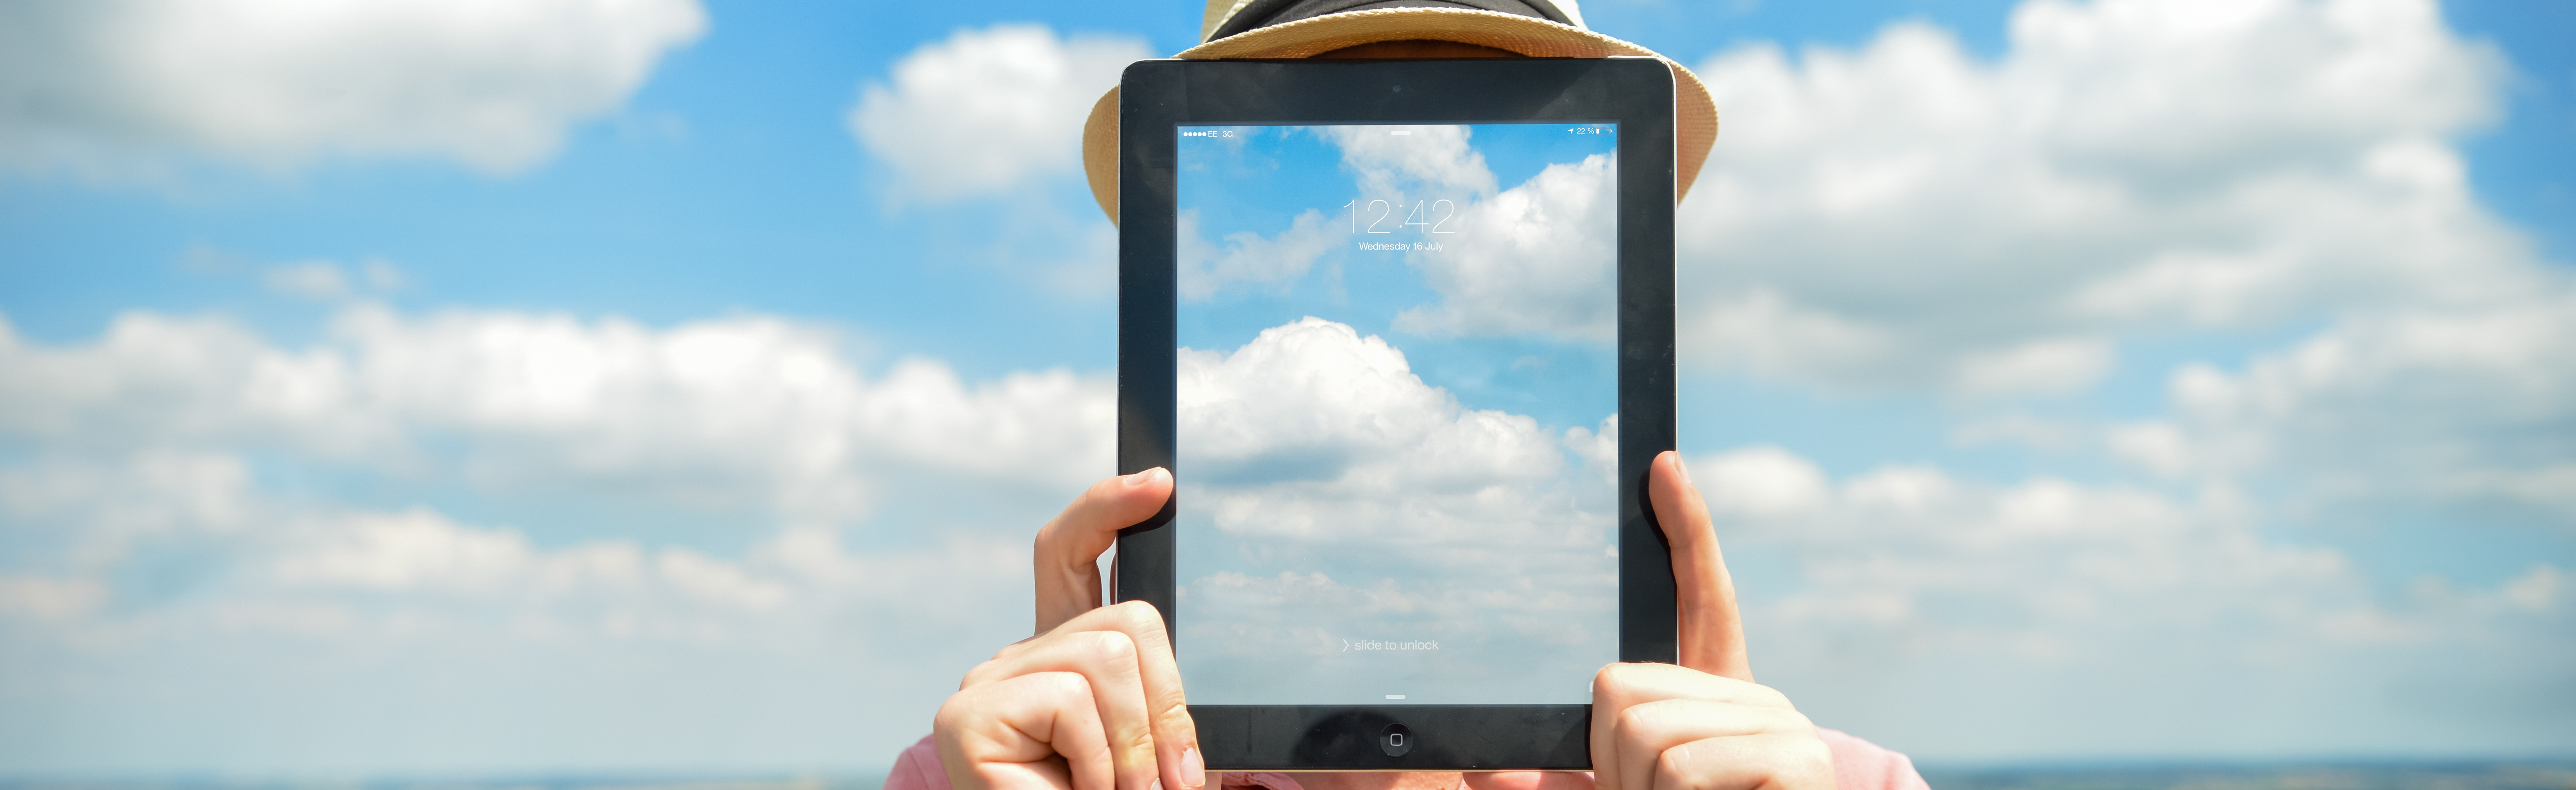 man-person-clouds-apple-1.jpg